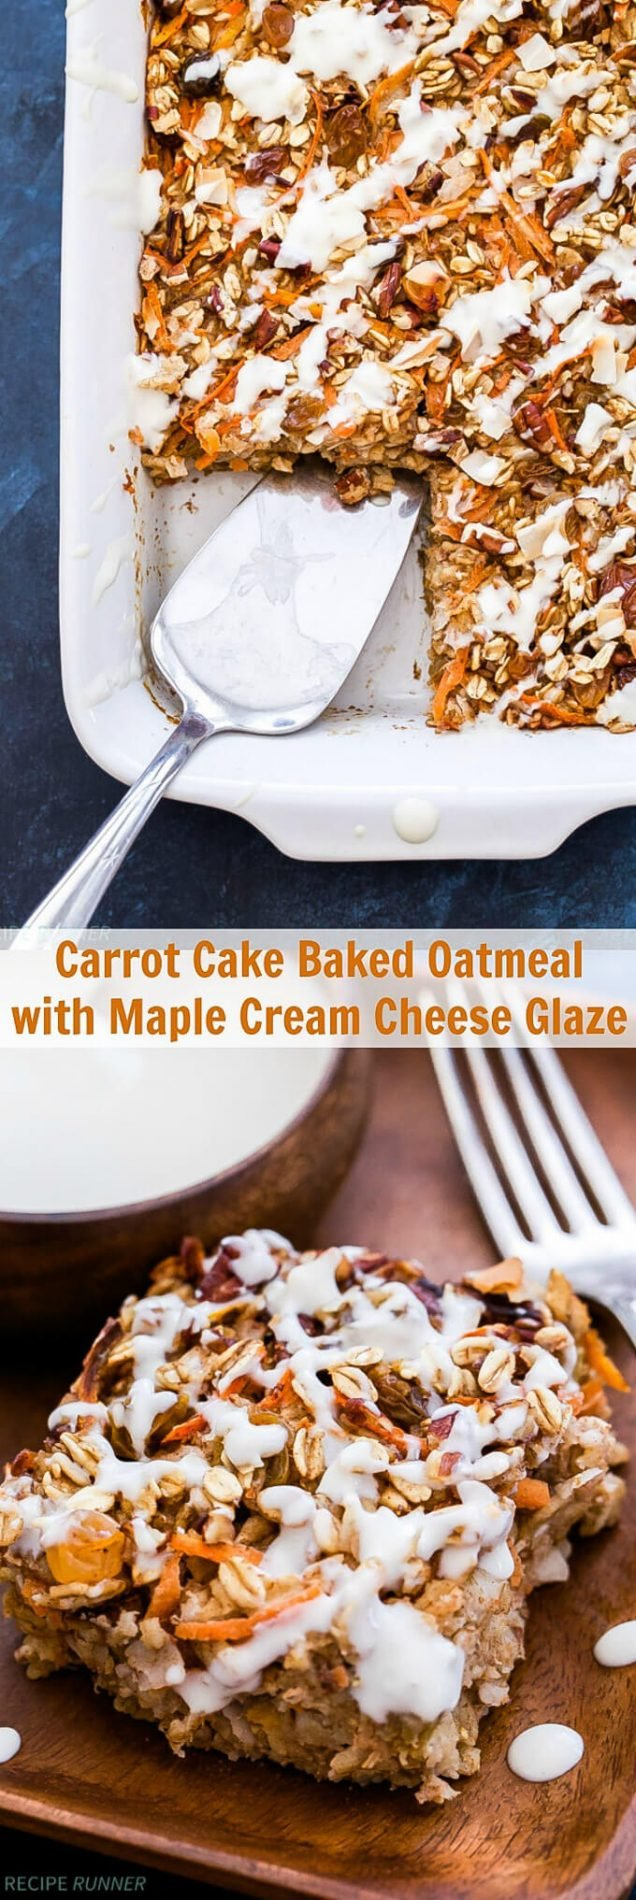 Enjoy all the flavor of carrot cake without the guilt and eat it for breakfast too! This Carrot Cake Baked Oatmeal with Maple Cream Cheese Glaze is an easy, gluten-free and naturally sweetened treat perfect for your next breakfast or brunch.